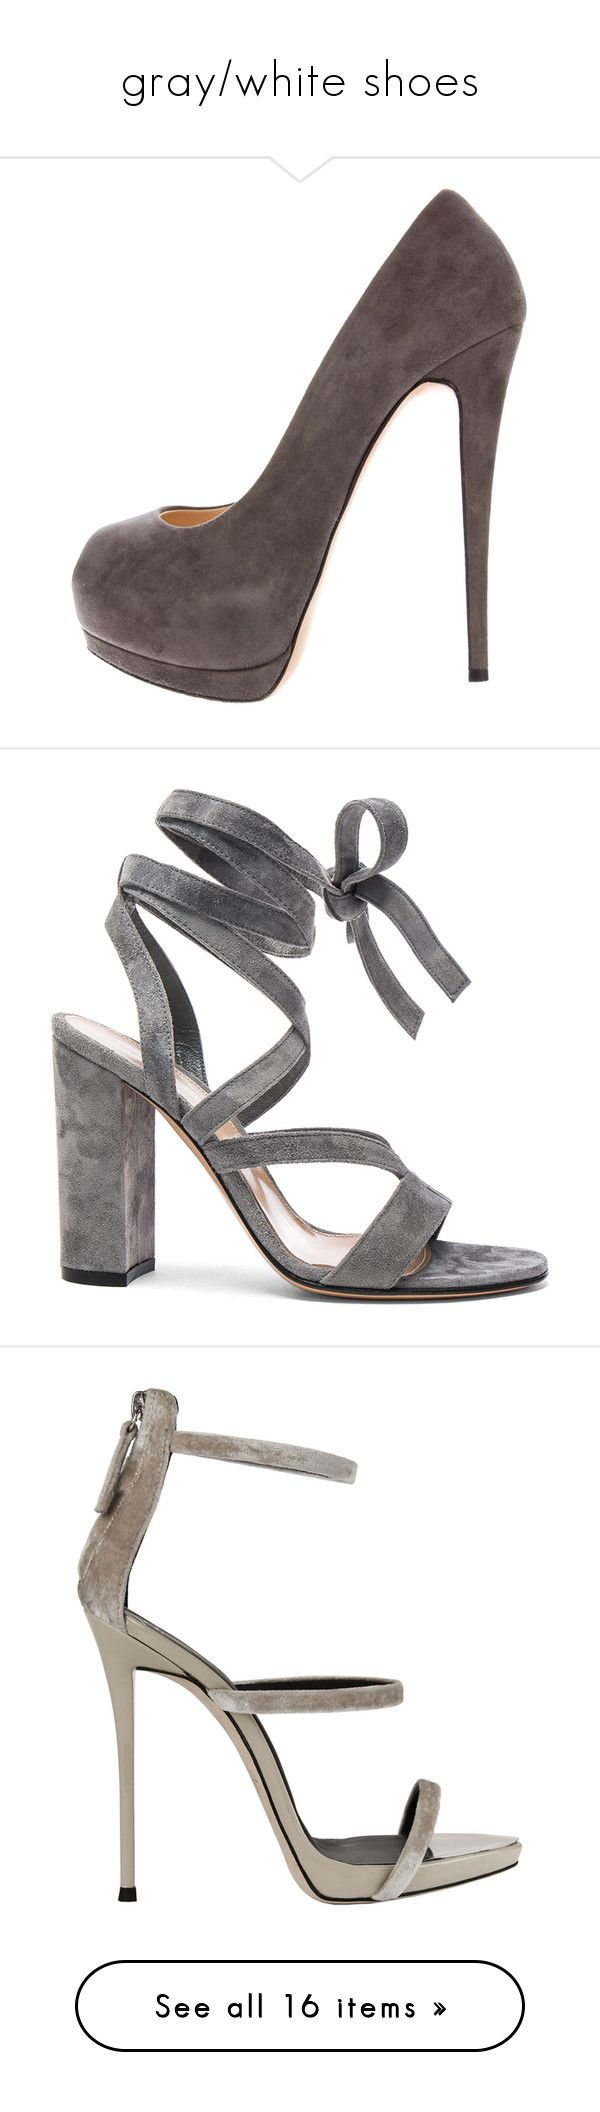 """""""gray/white shoes"""" by mrstomlinson974 on Polyvore featuring shoes, pumps, grey, grey pumps, grey shoes, platform shoes, peep-toe pumps, suede pumps, sandals and heels"""